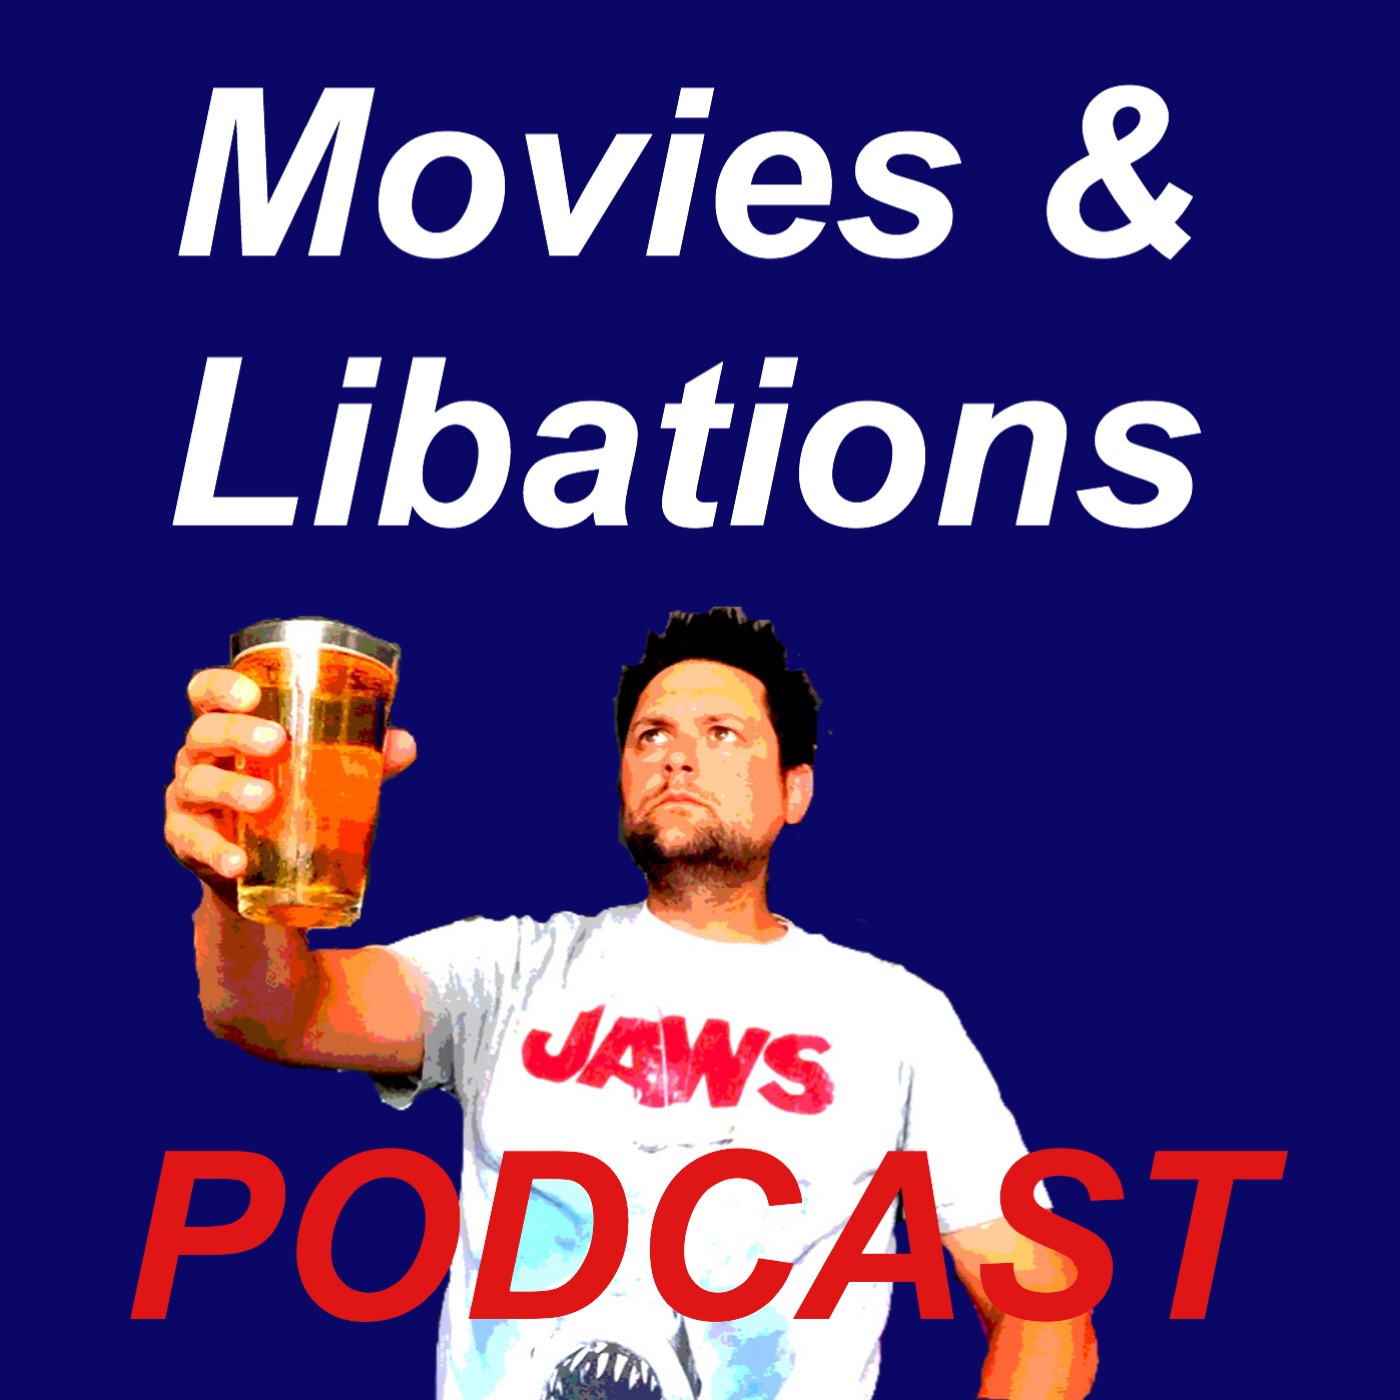 Movies & Libations Podcast